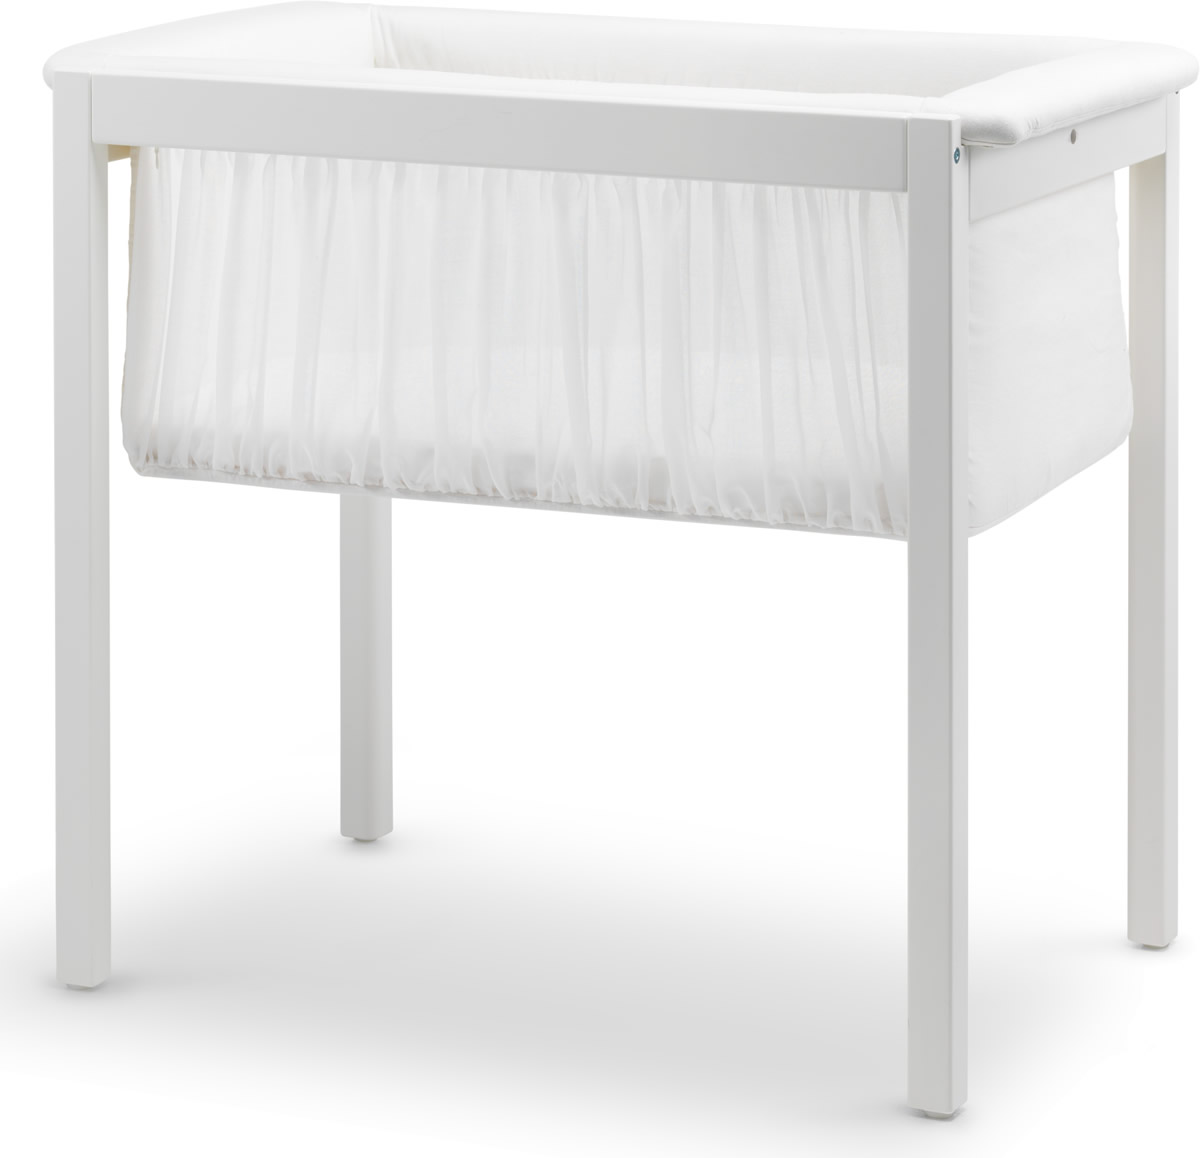 Stokke Home Cradle - White